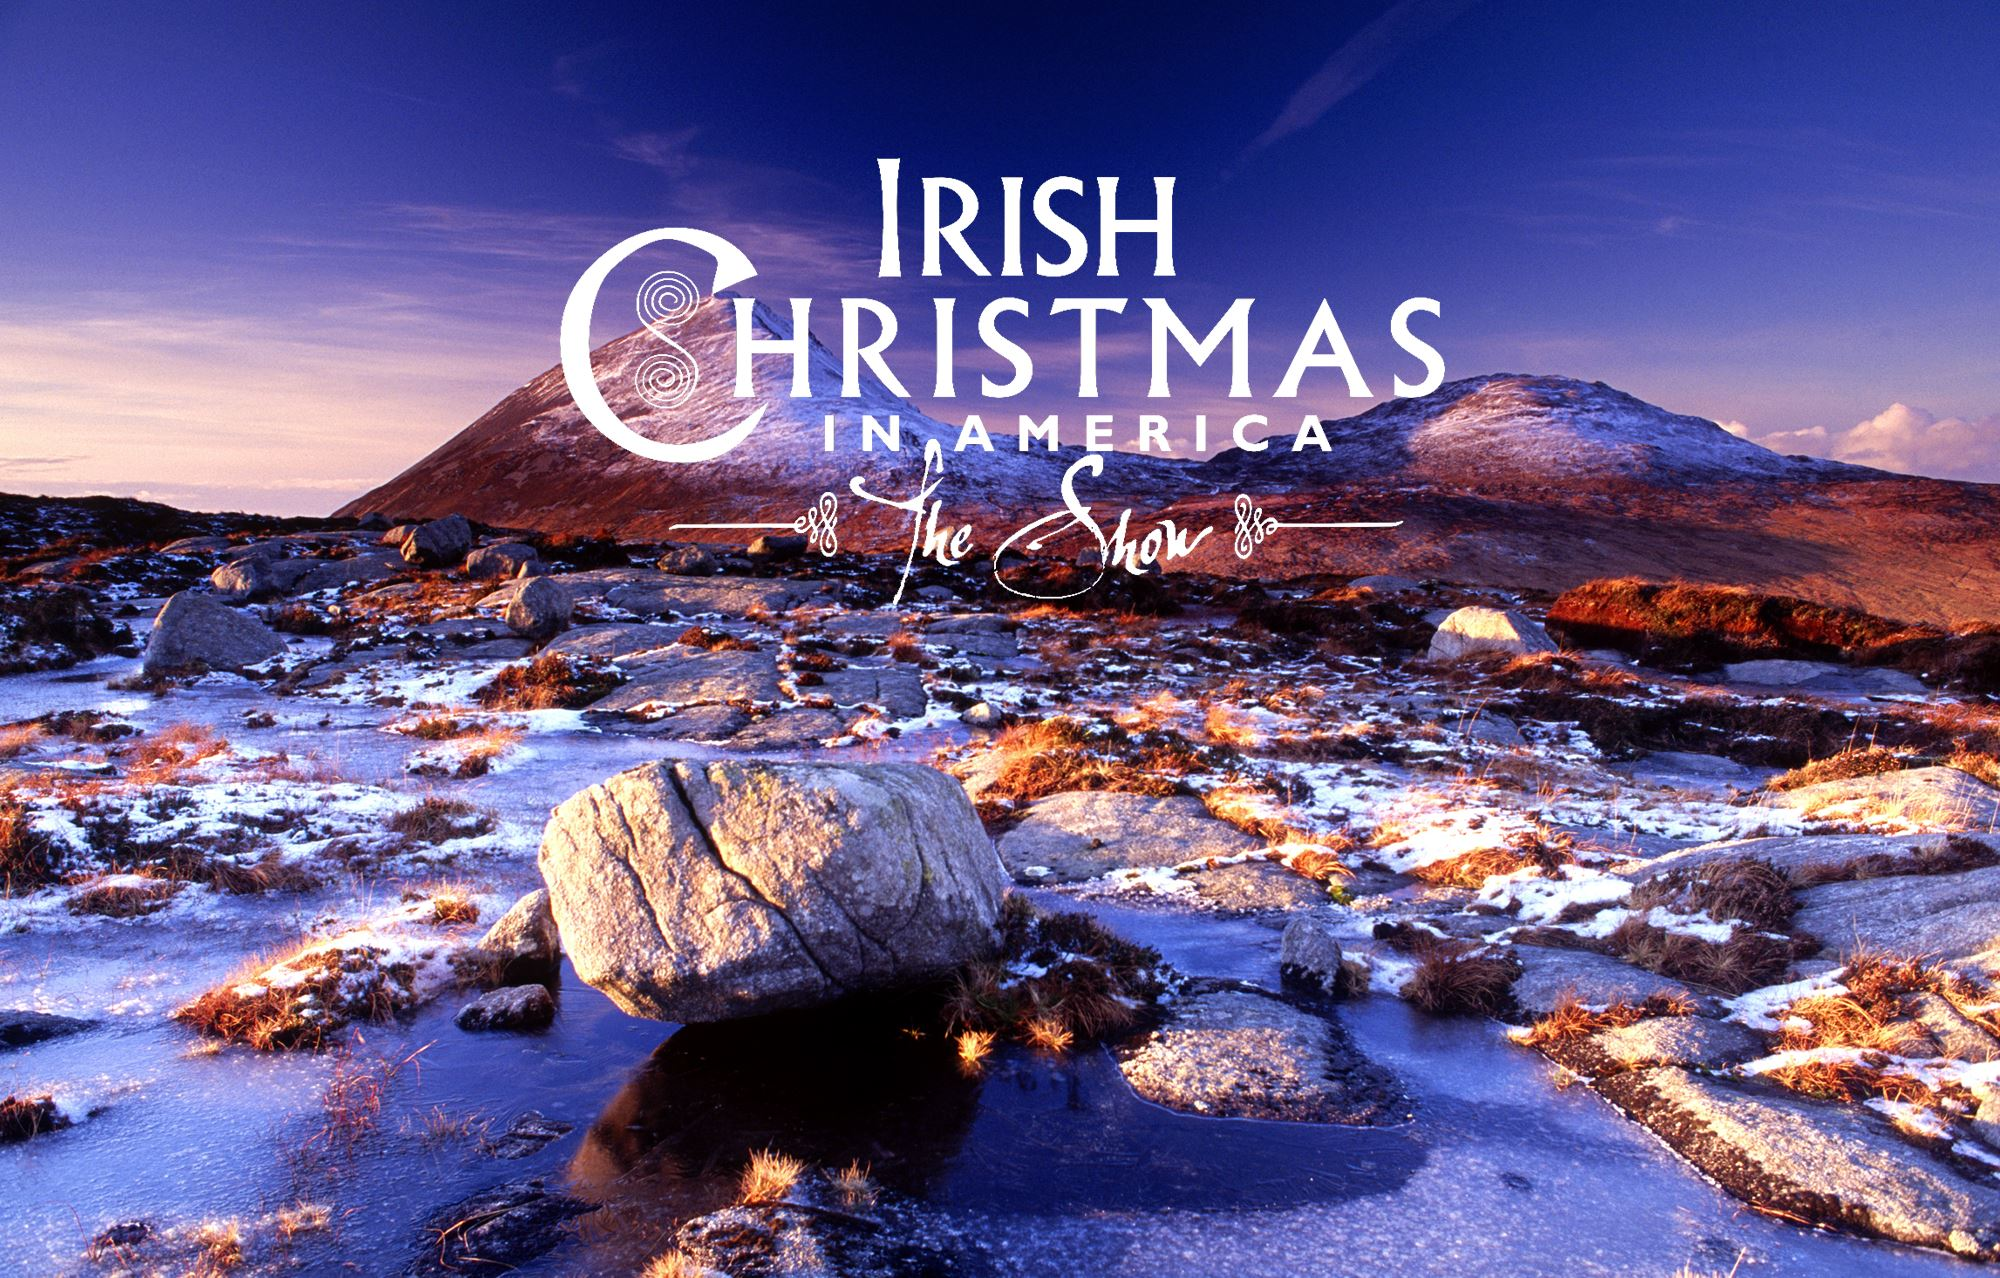 Irish Christmas in America | Dec 2